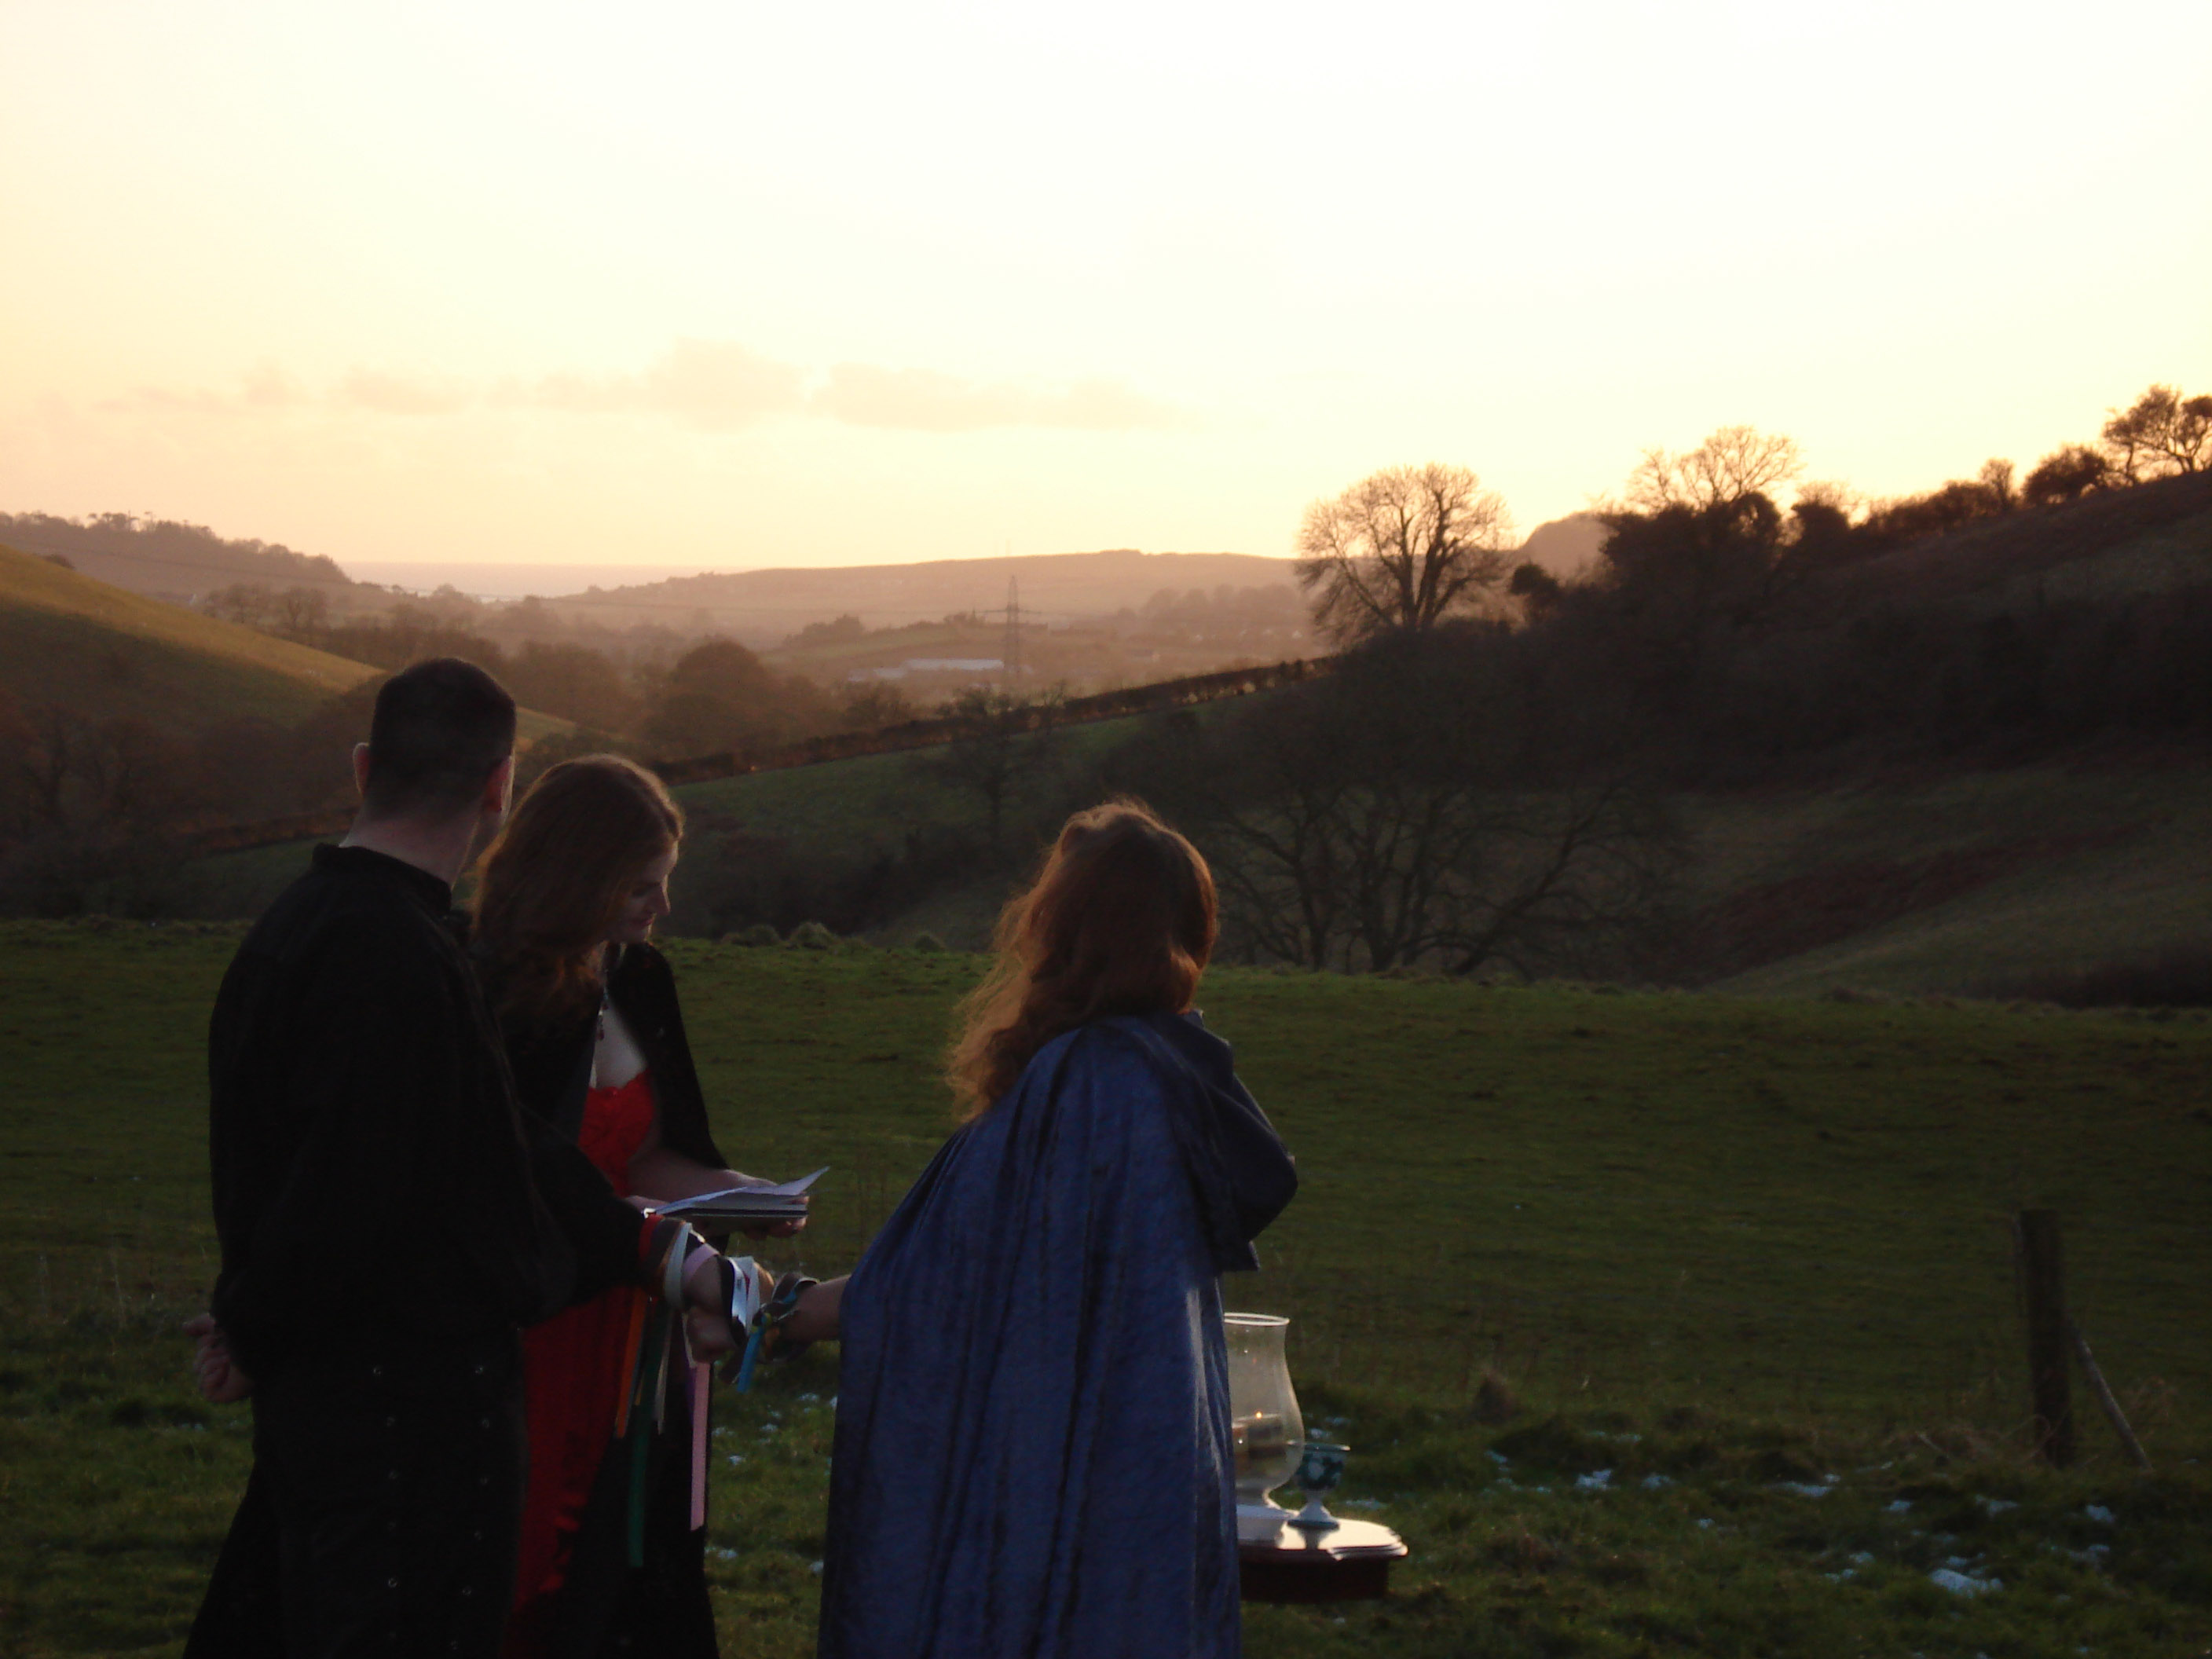 Lancombes House - Handfasting location